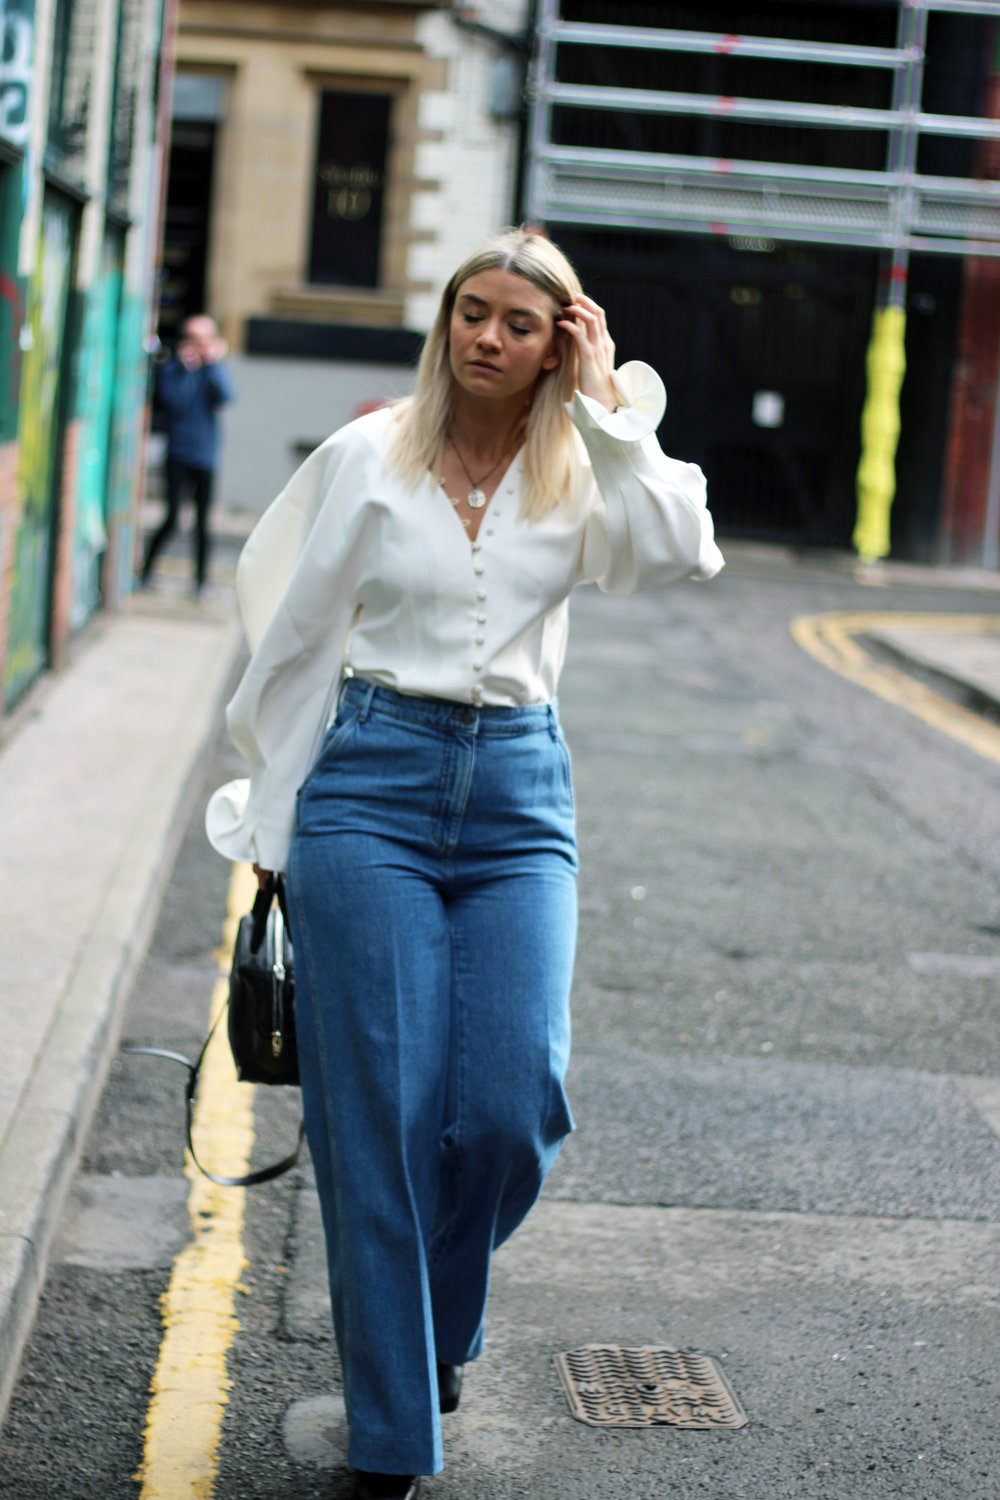 independent brands, instagram shopping, oh hey gilr, white blouse, joey taylor, northern magpie 3